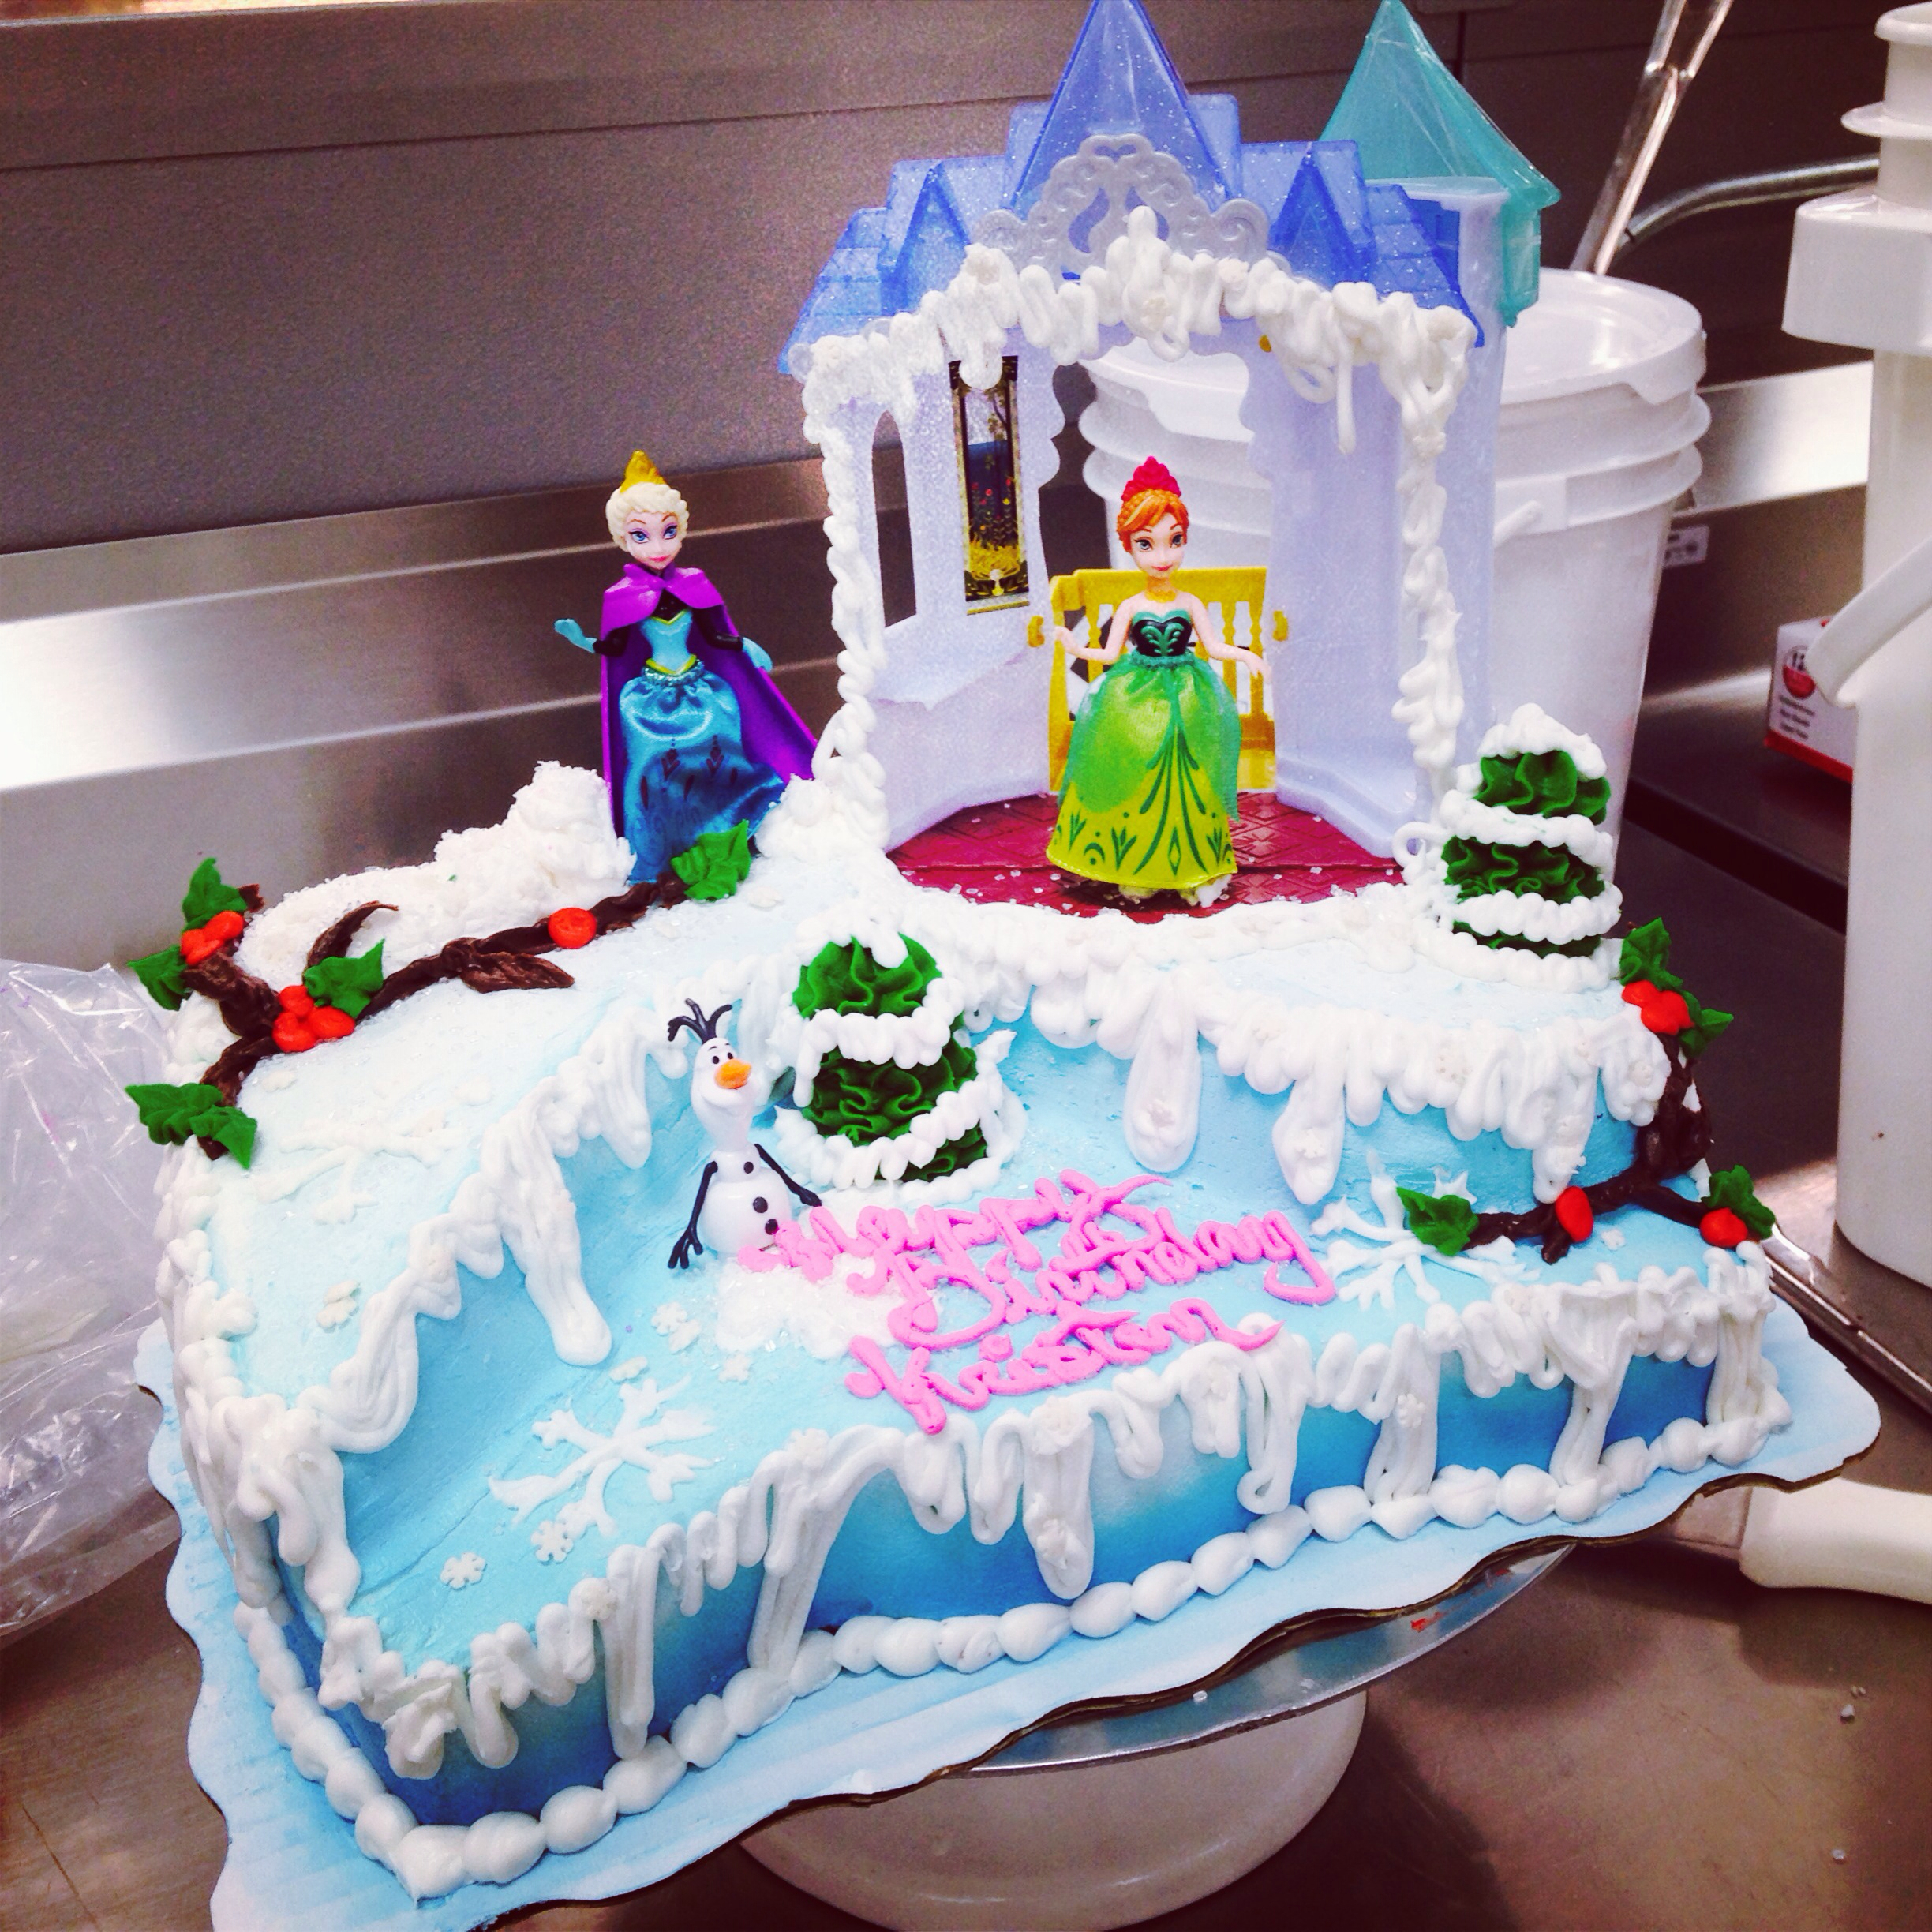 Little Mermaid Birthday Cake Walmart Home Tips Designs Camo Cakes